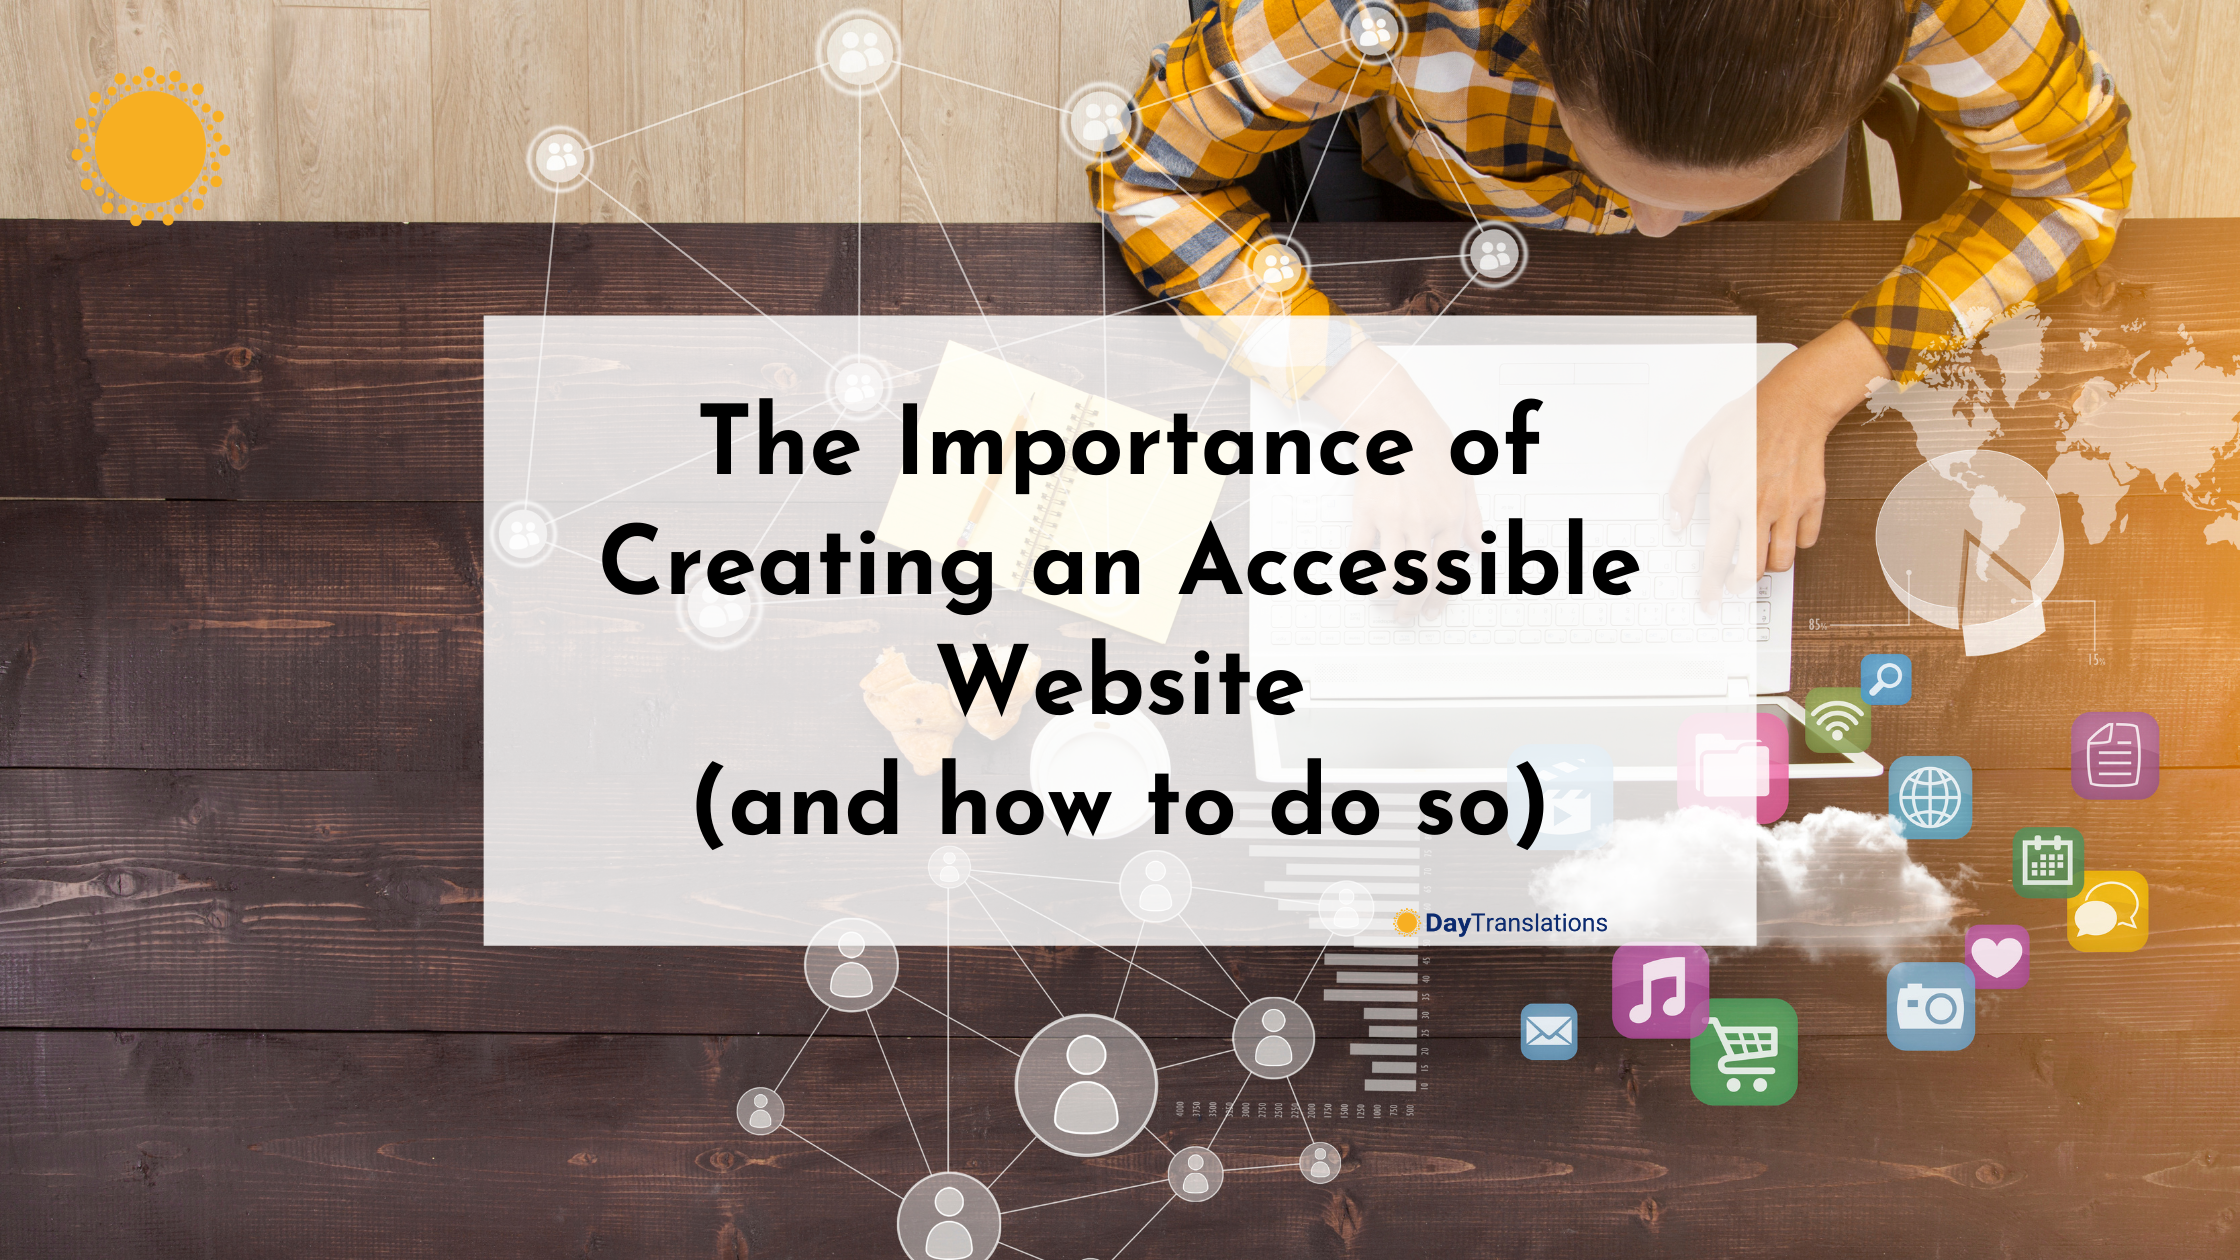 The Importance of Creating an Accessible Website (and how to do so)